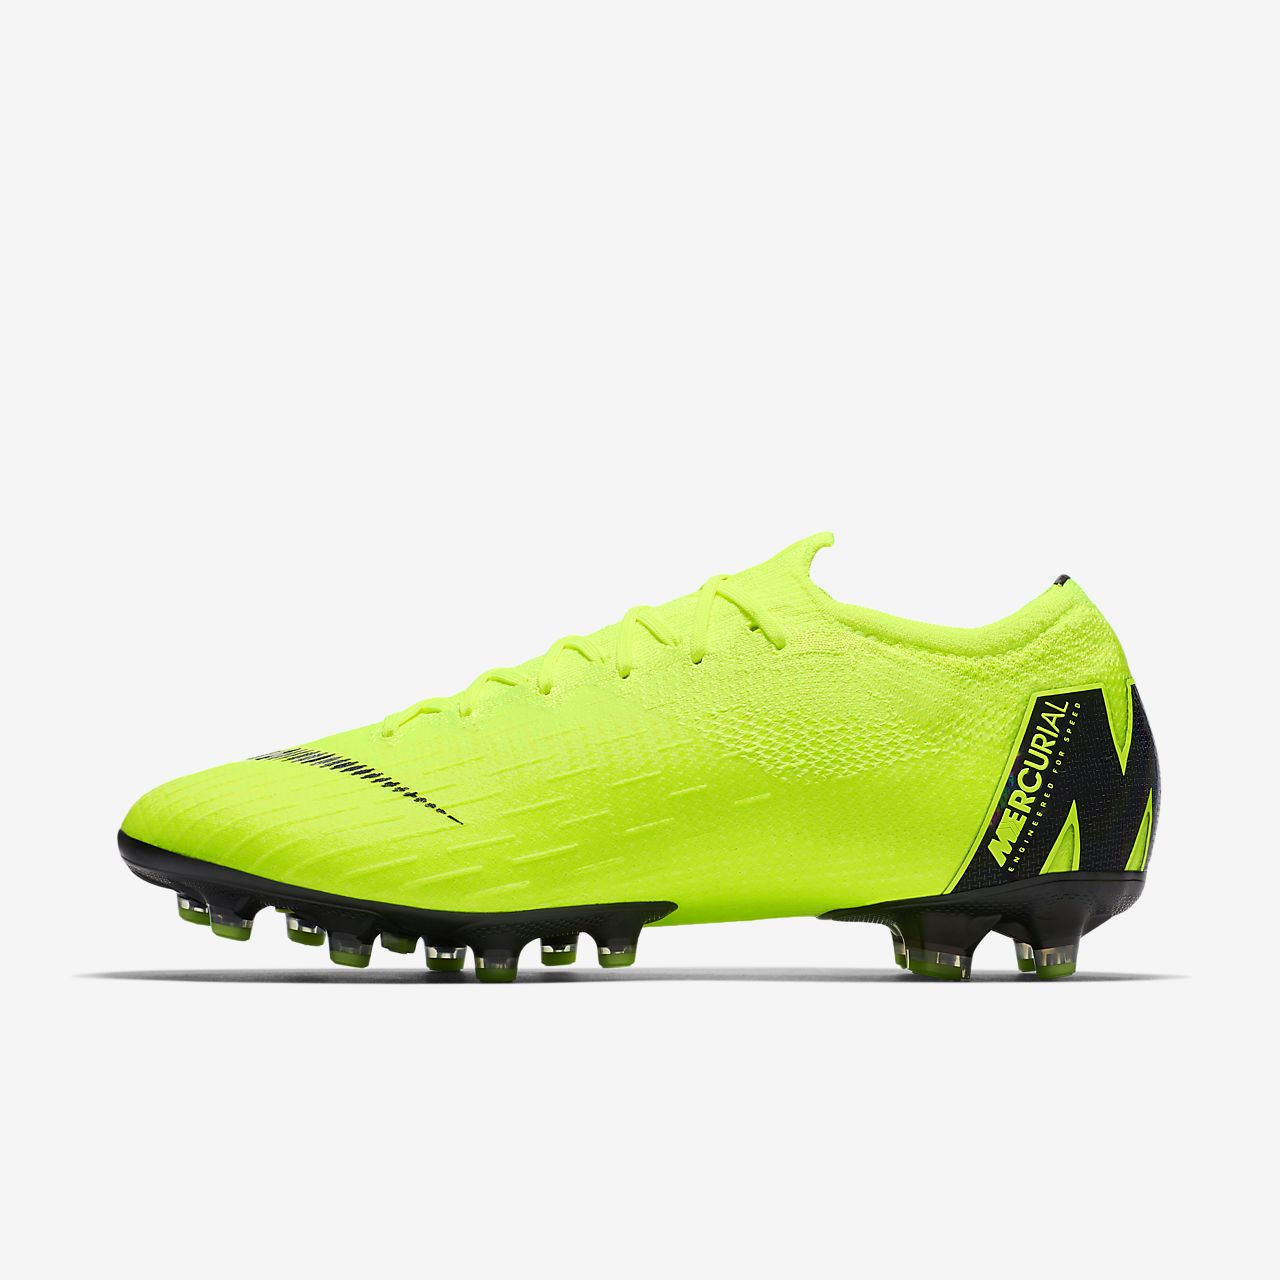 Nike Mercurial Vapor 360 Elite AG-PRO Artificial-Grass Football Boot ... 1a139a8f96